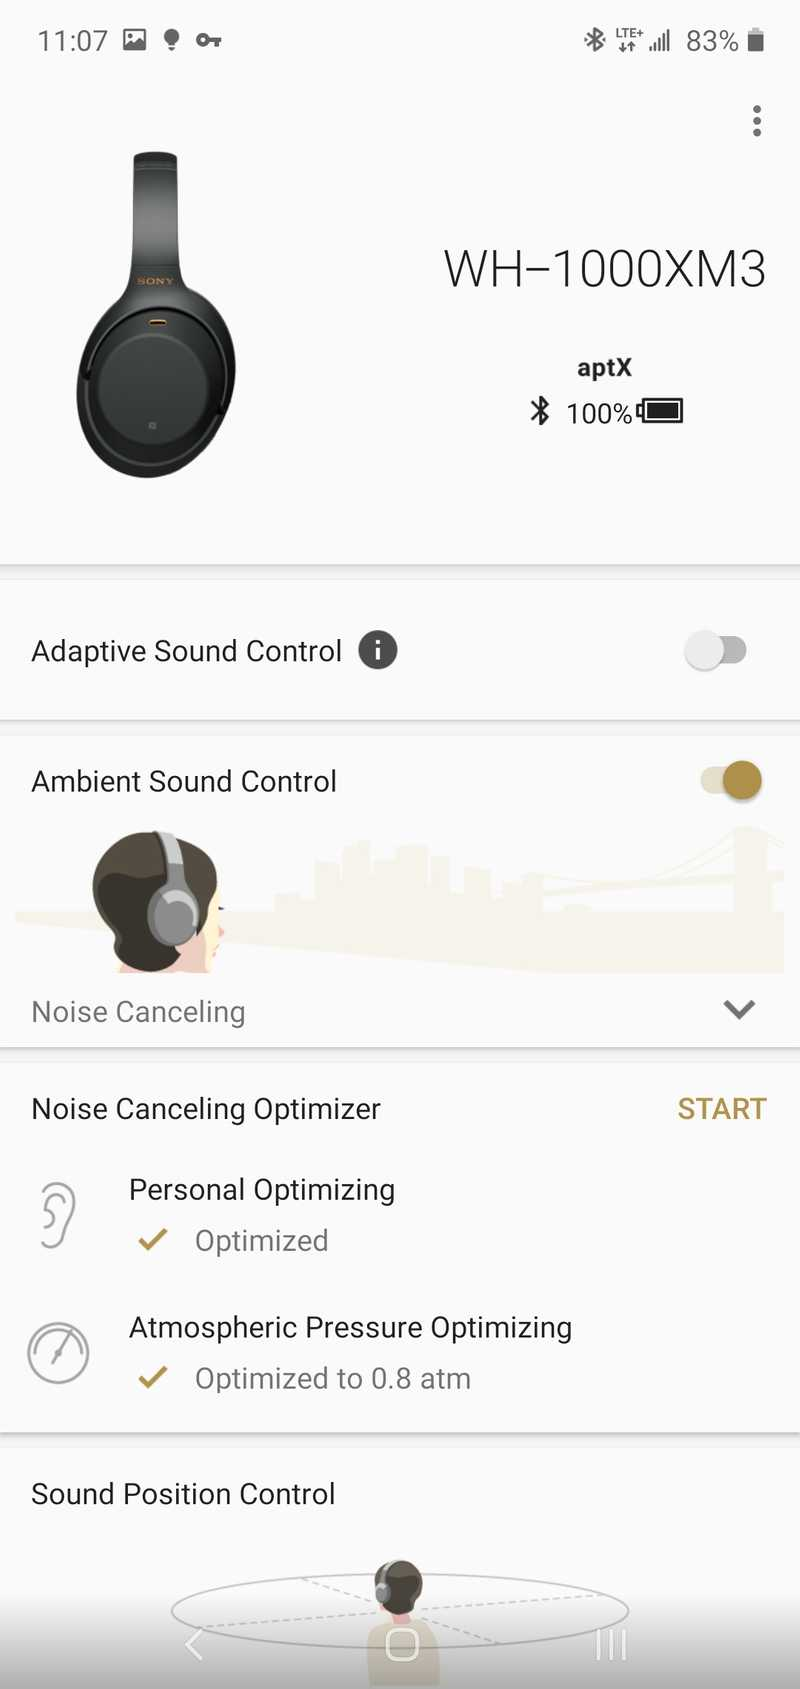 Image of Sony's app for the WH-1000XM3